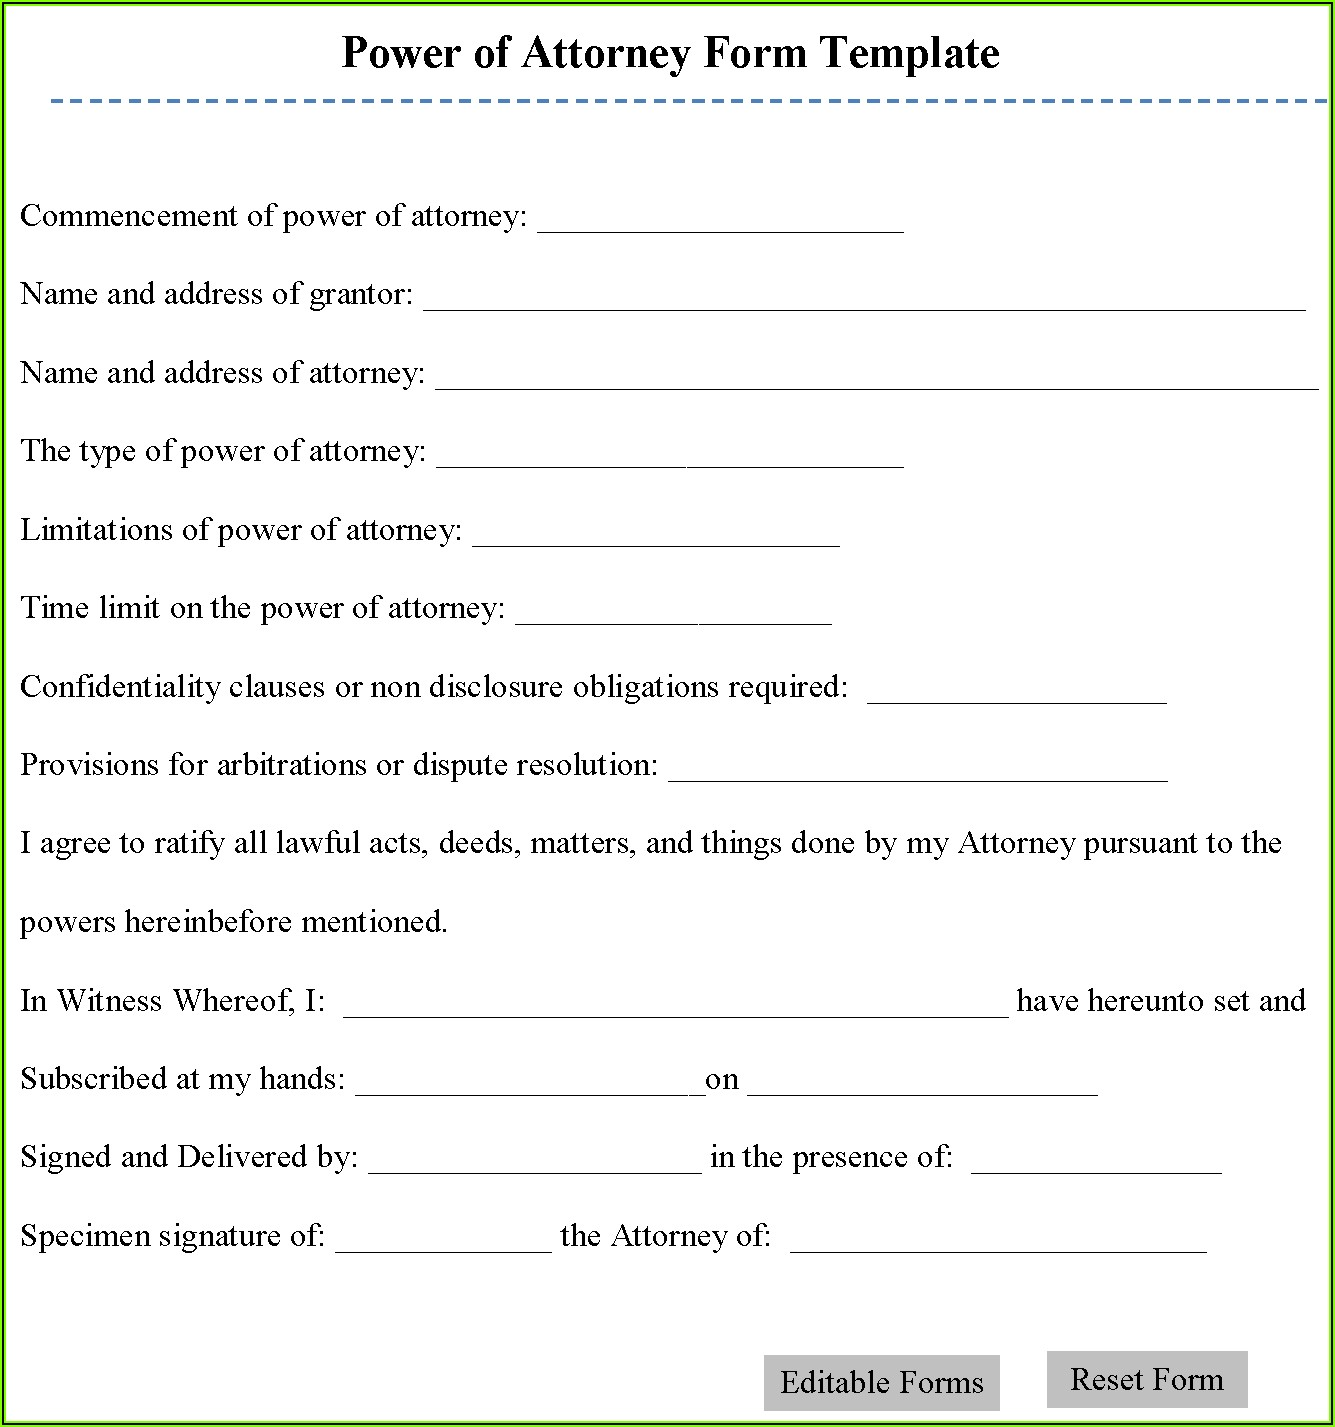 Editable Power Of Attorney Form